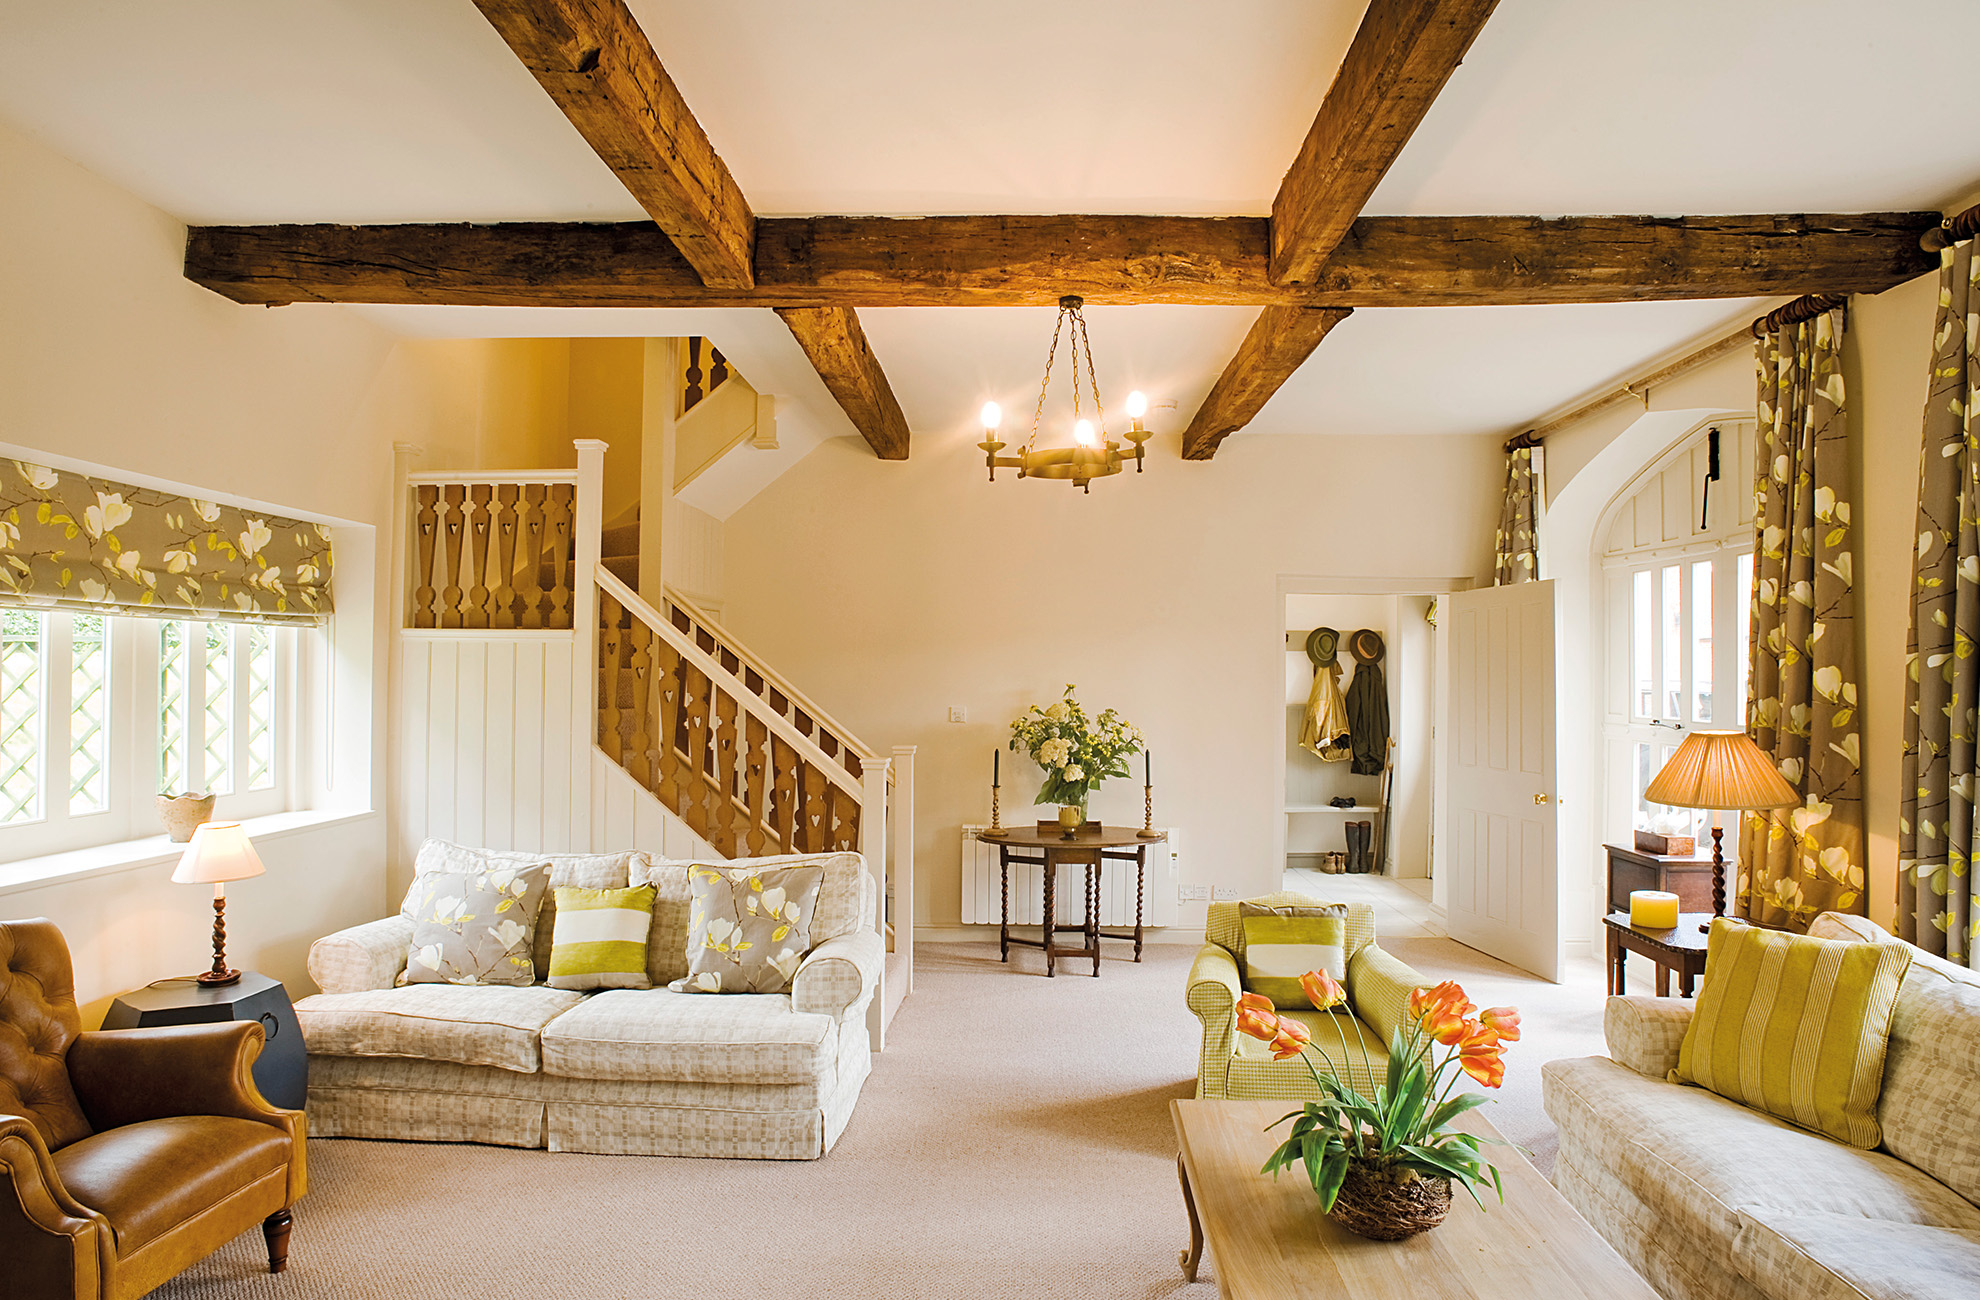 The Malbanc holiday cottage at Combermere Abbey is perfect for a Mother's Day celebration